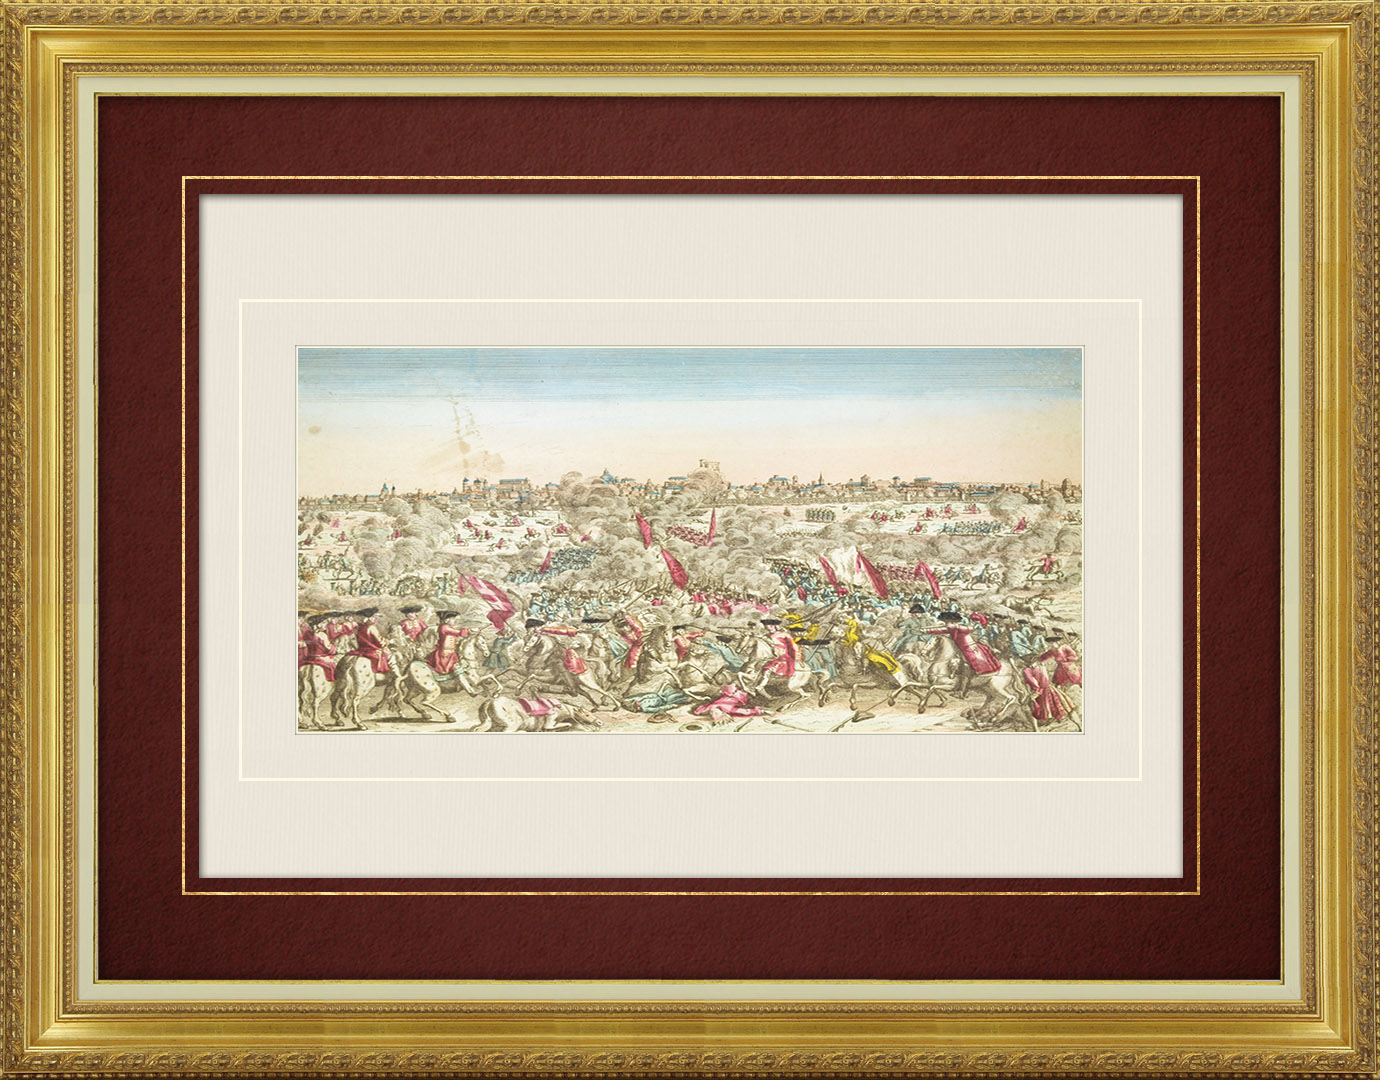 18th Century optical view in original watercolors of the Spanish–Portuguese battle in South America